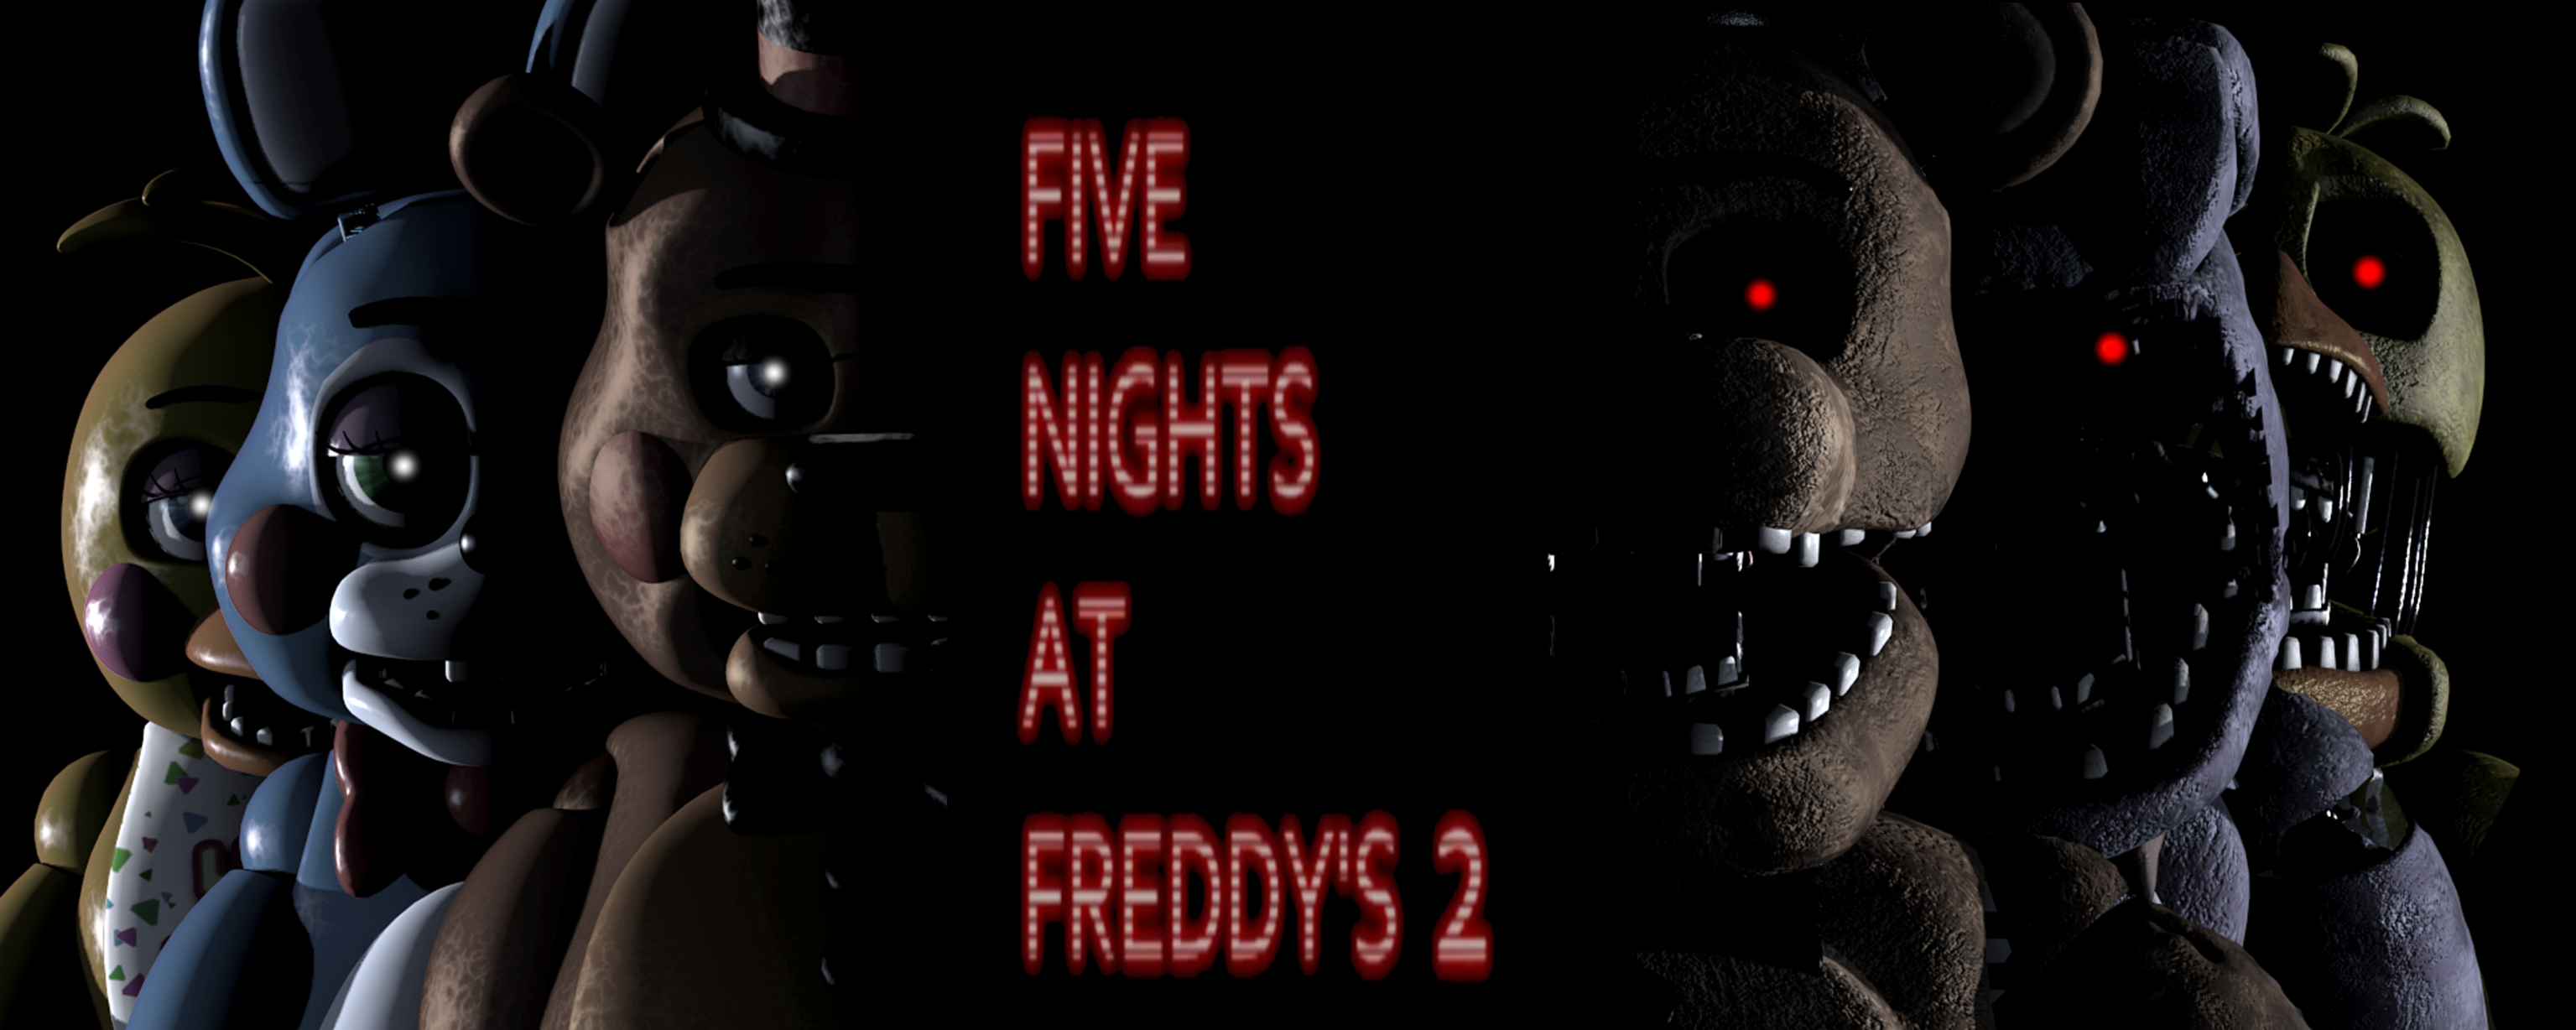 Download five nights at freddy s 2 wallpaper by elsa shadow